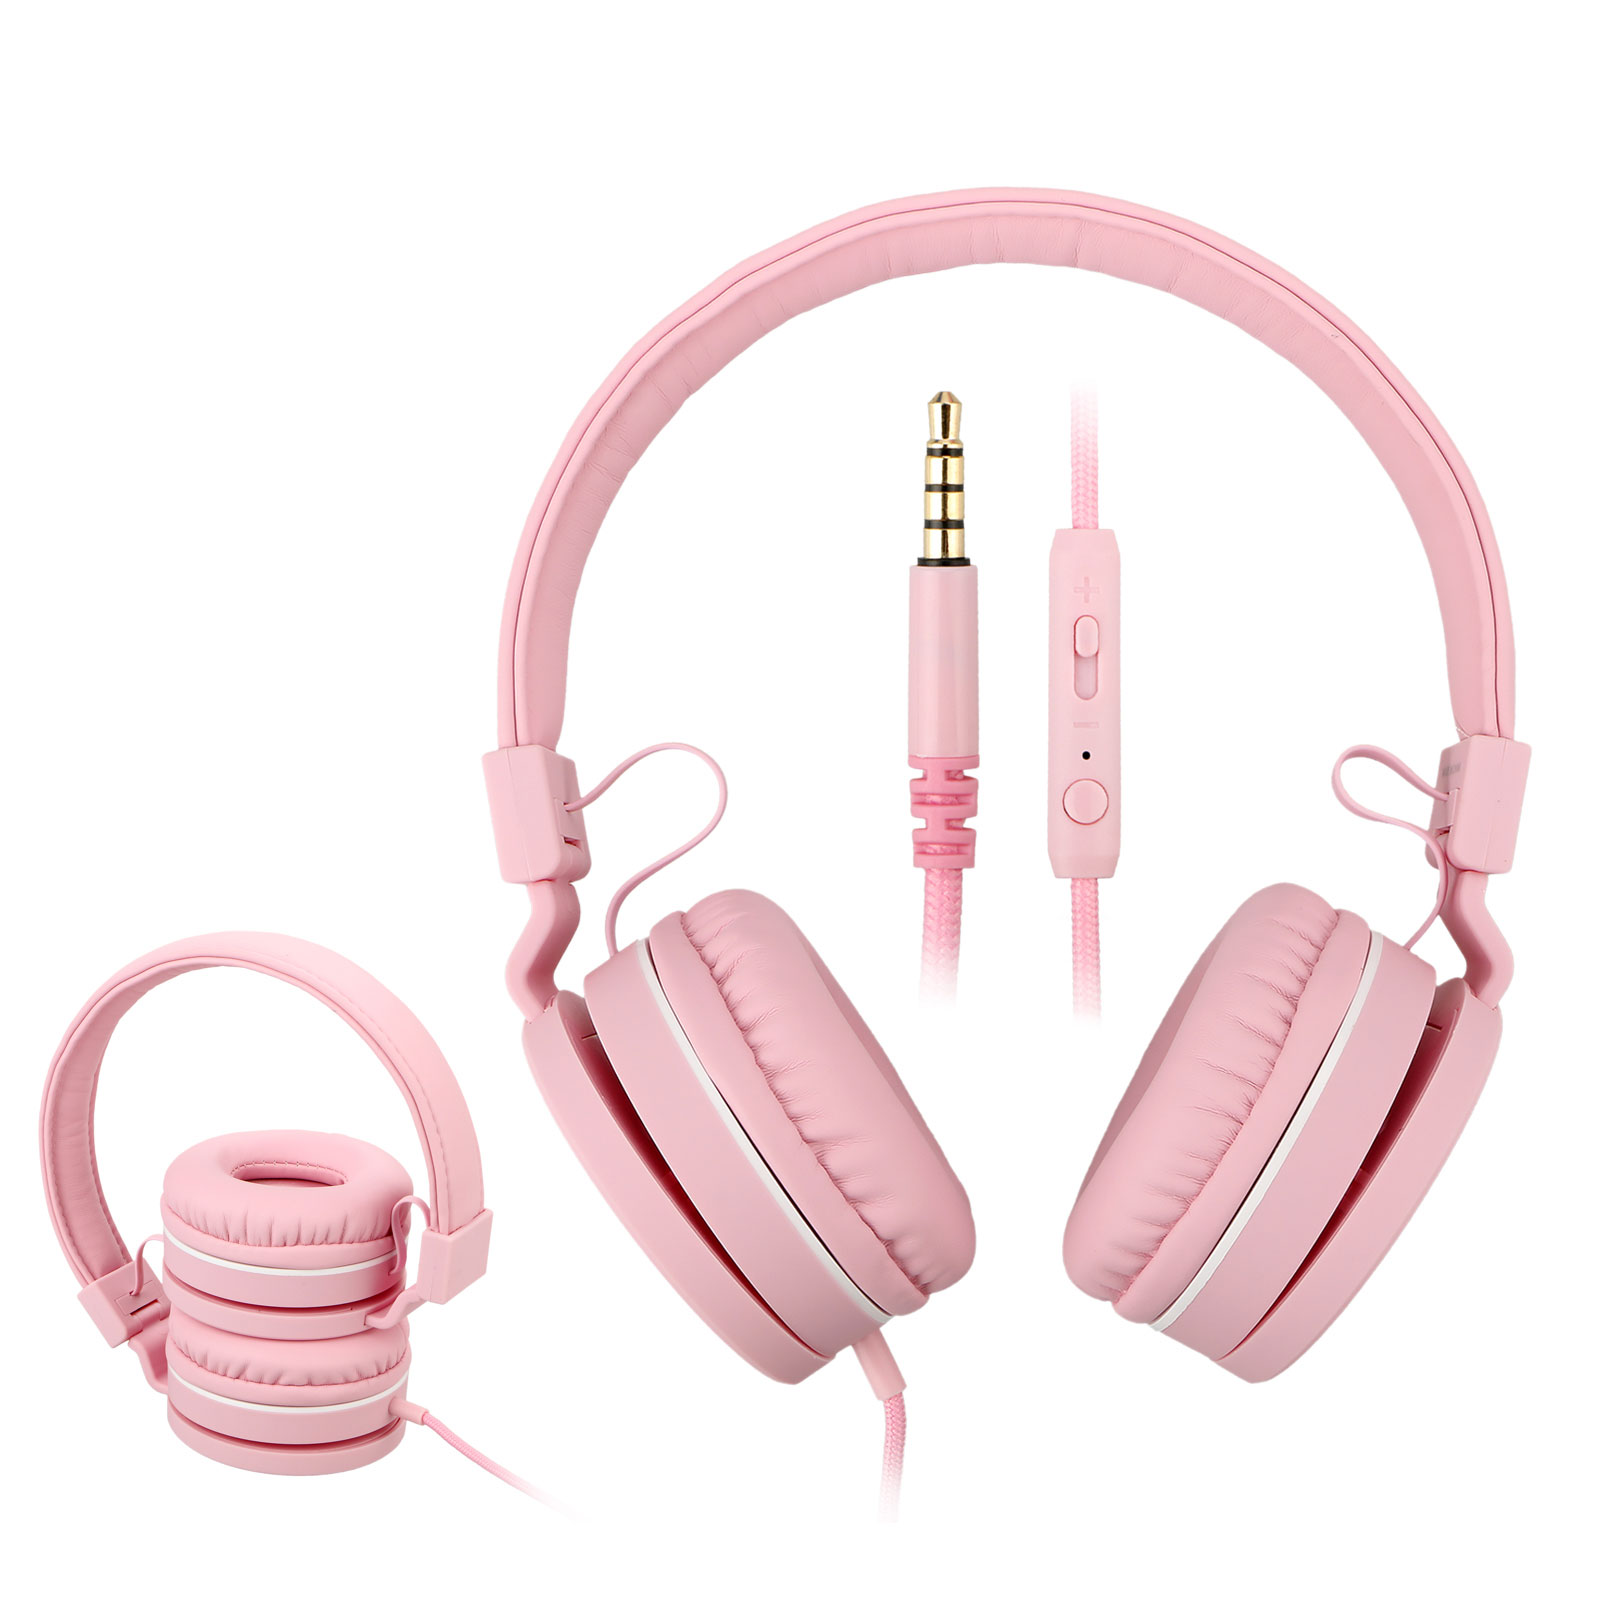 Children Headphones, EEEKit Universal Lightweight Safe Sound On-Ear Headsets Children Wired Foldable Earphone with 3.5mm Jack for Phone, MP3/4, PC, Tablet